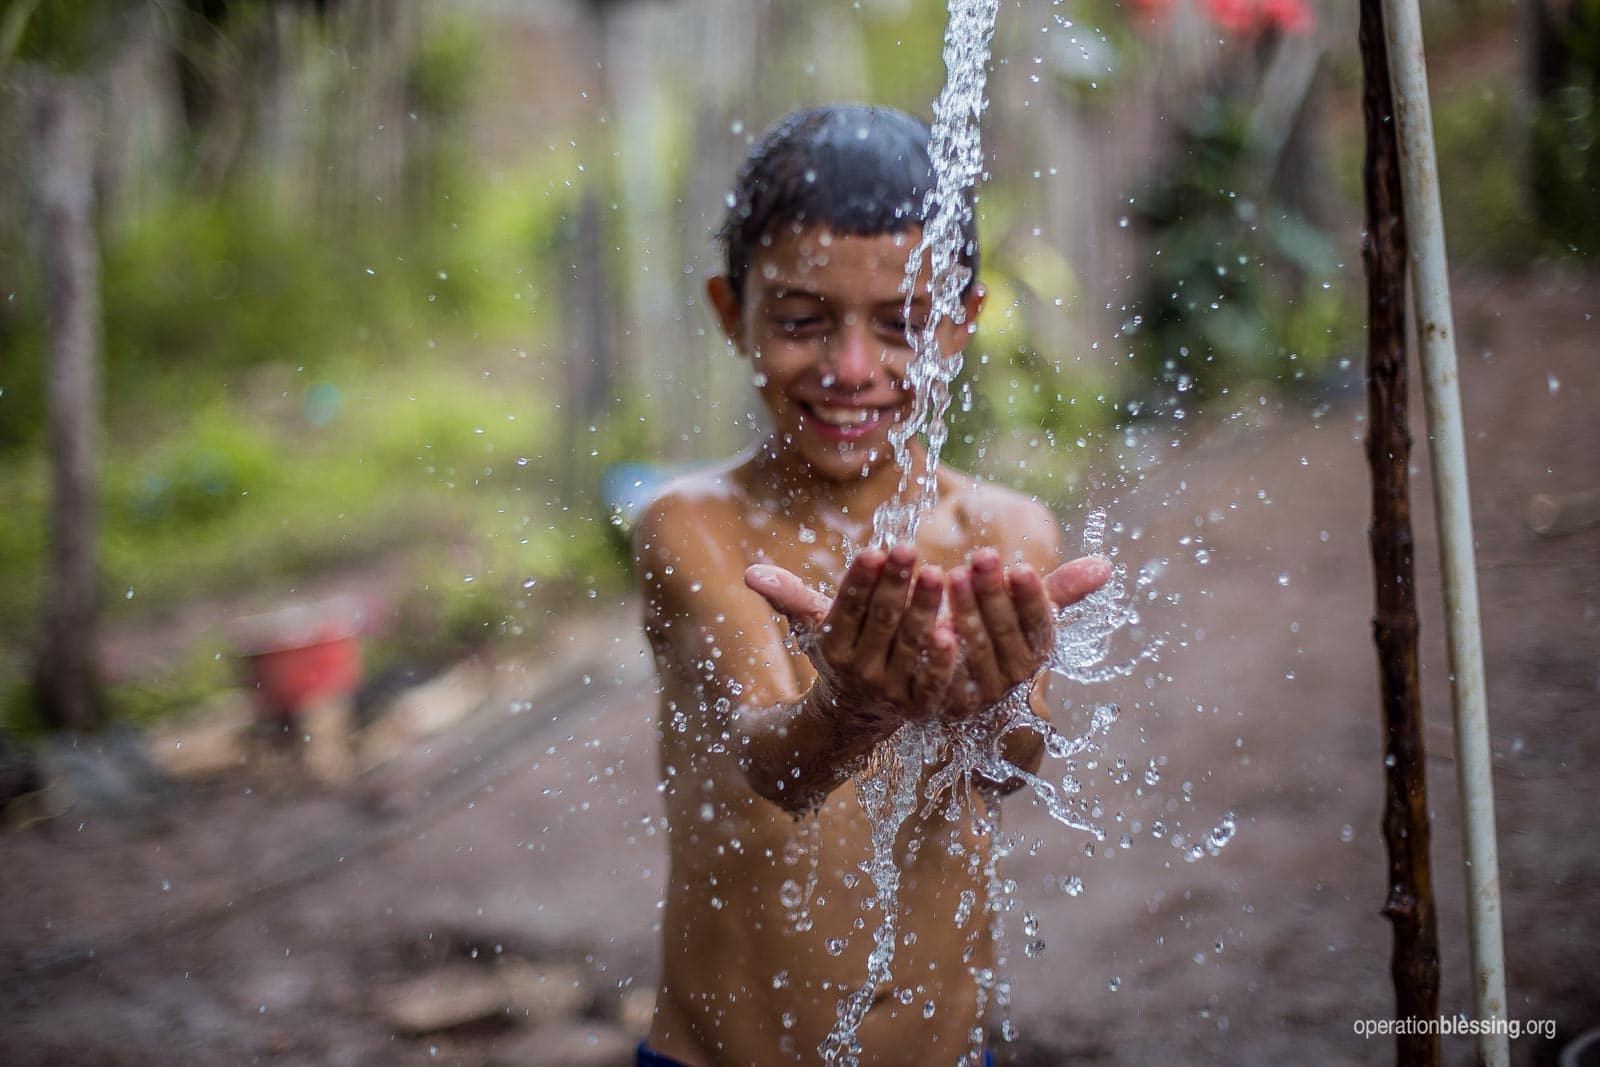 A boy soaks in the simple pleasure of abundant safe water.